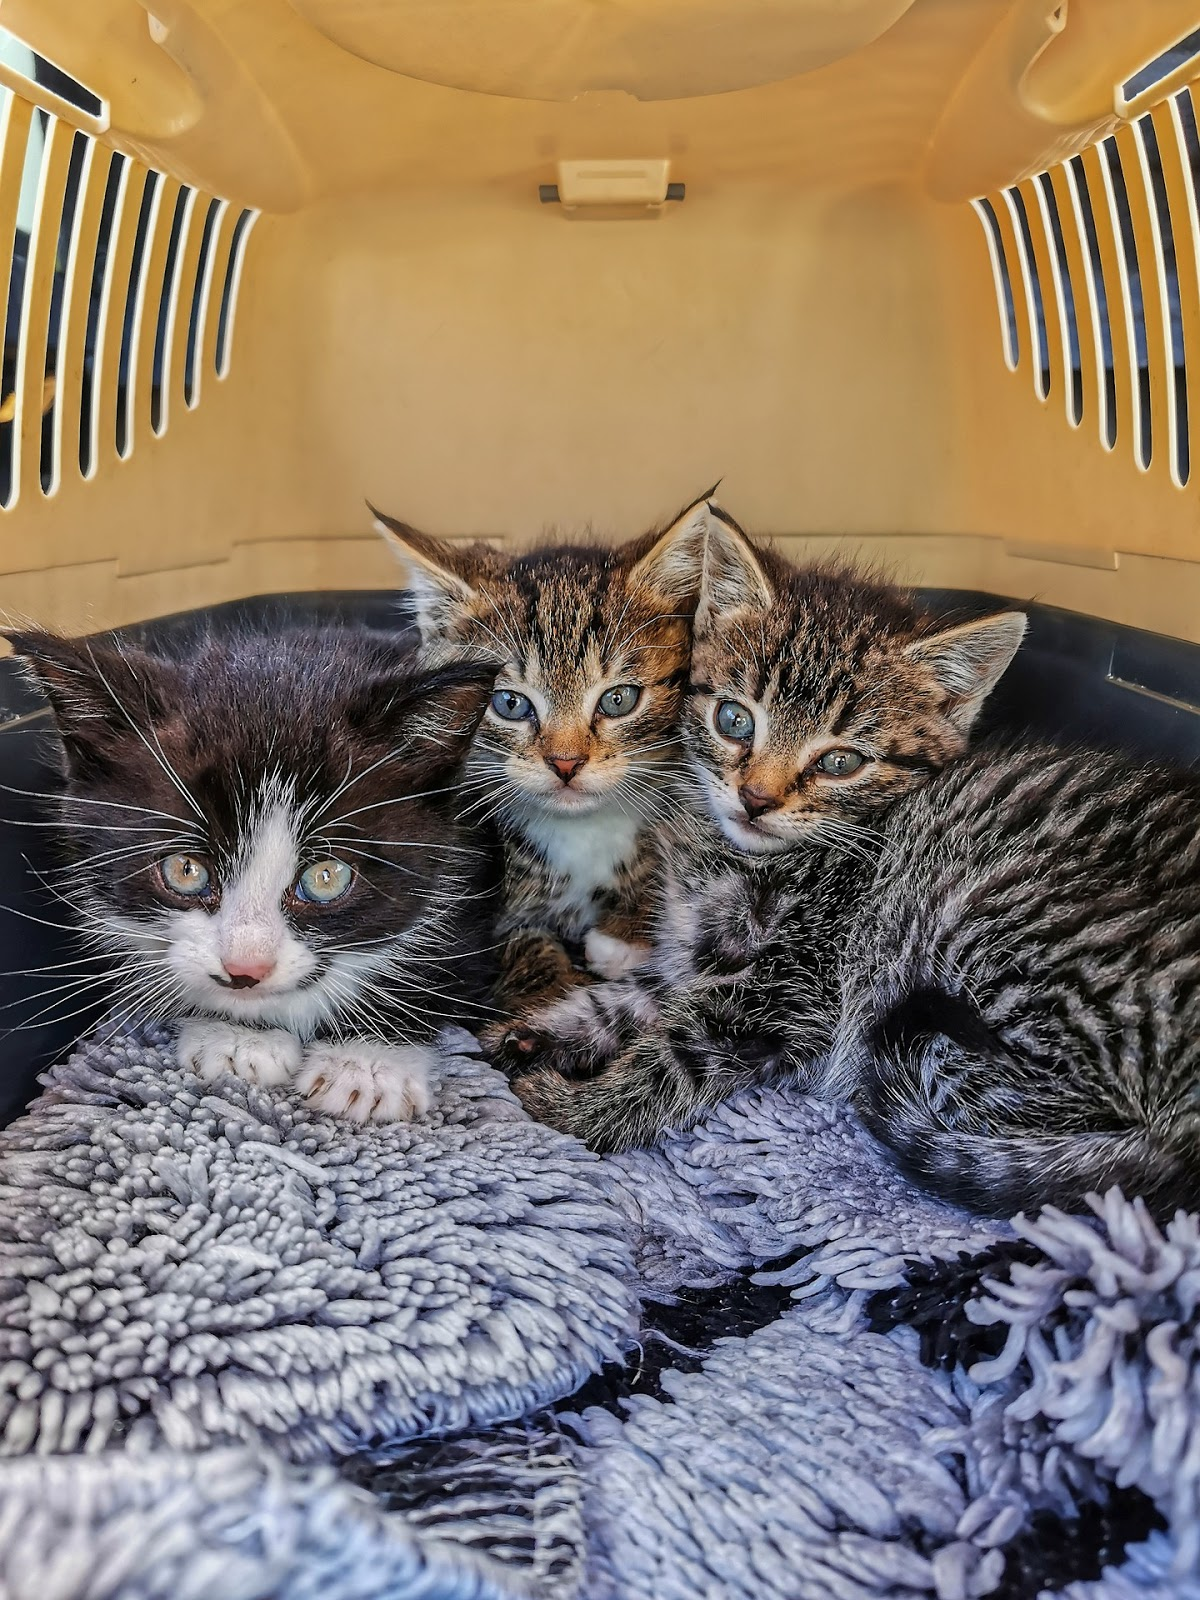 Little cats in carrier